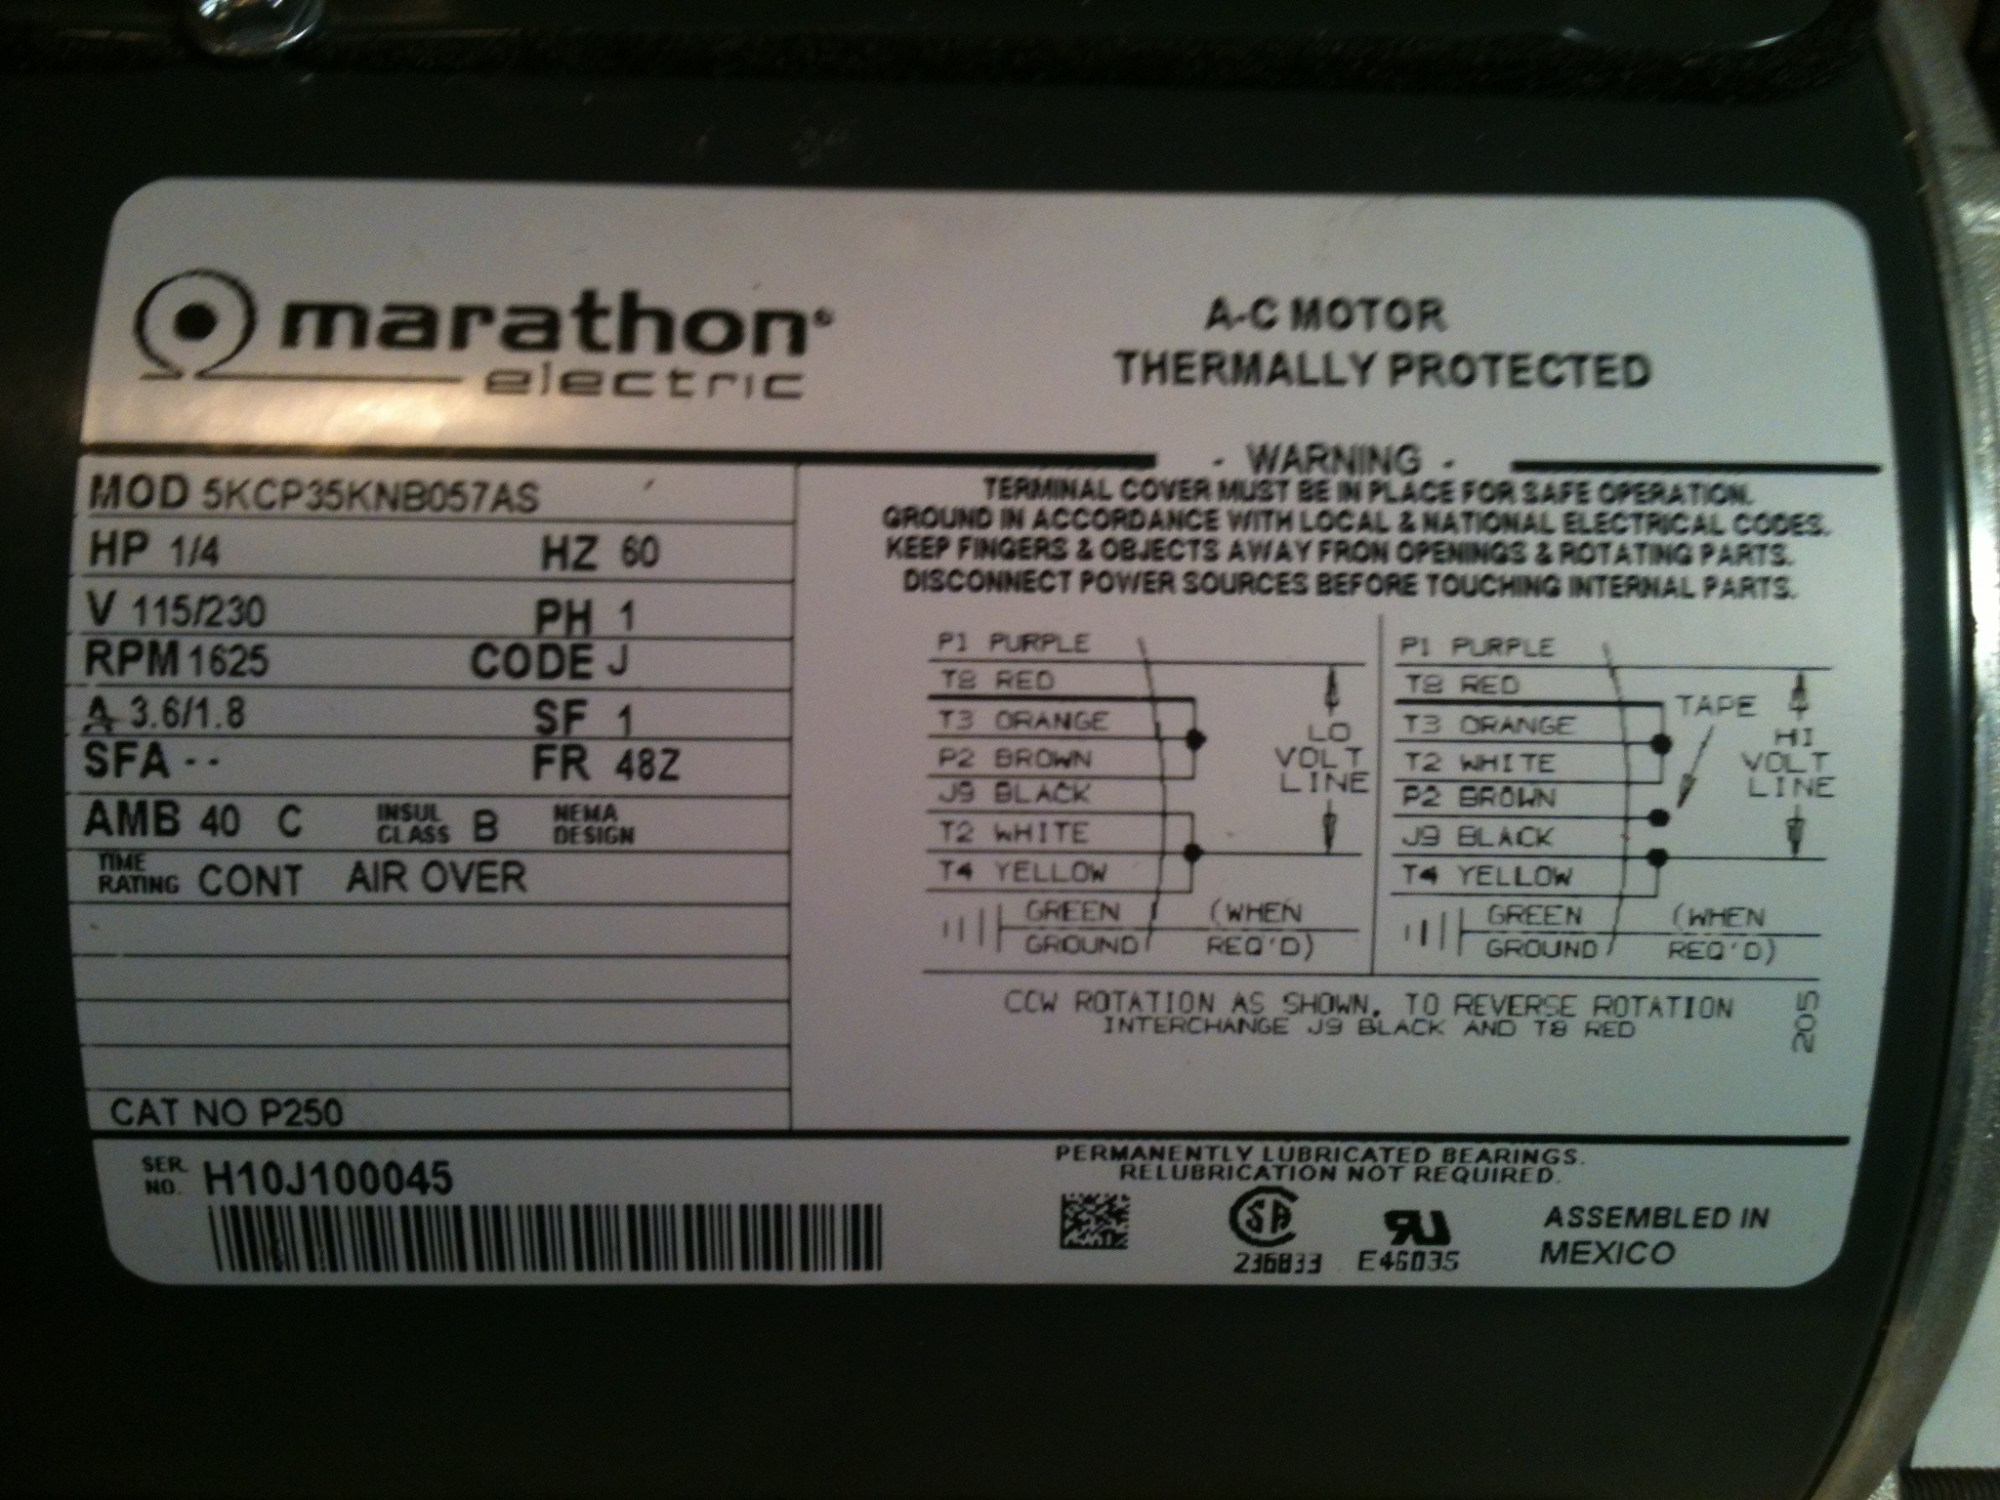 hight resolution of marathon motor wiring diagram wiring diagram world marathon electric motor wiring diagram electric motor marathon electric